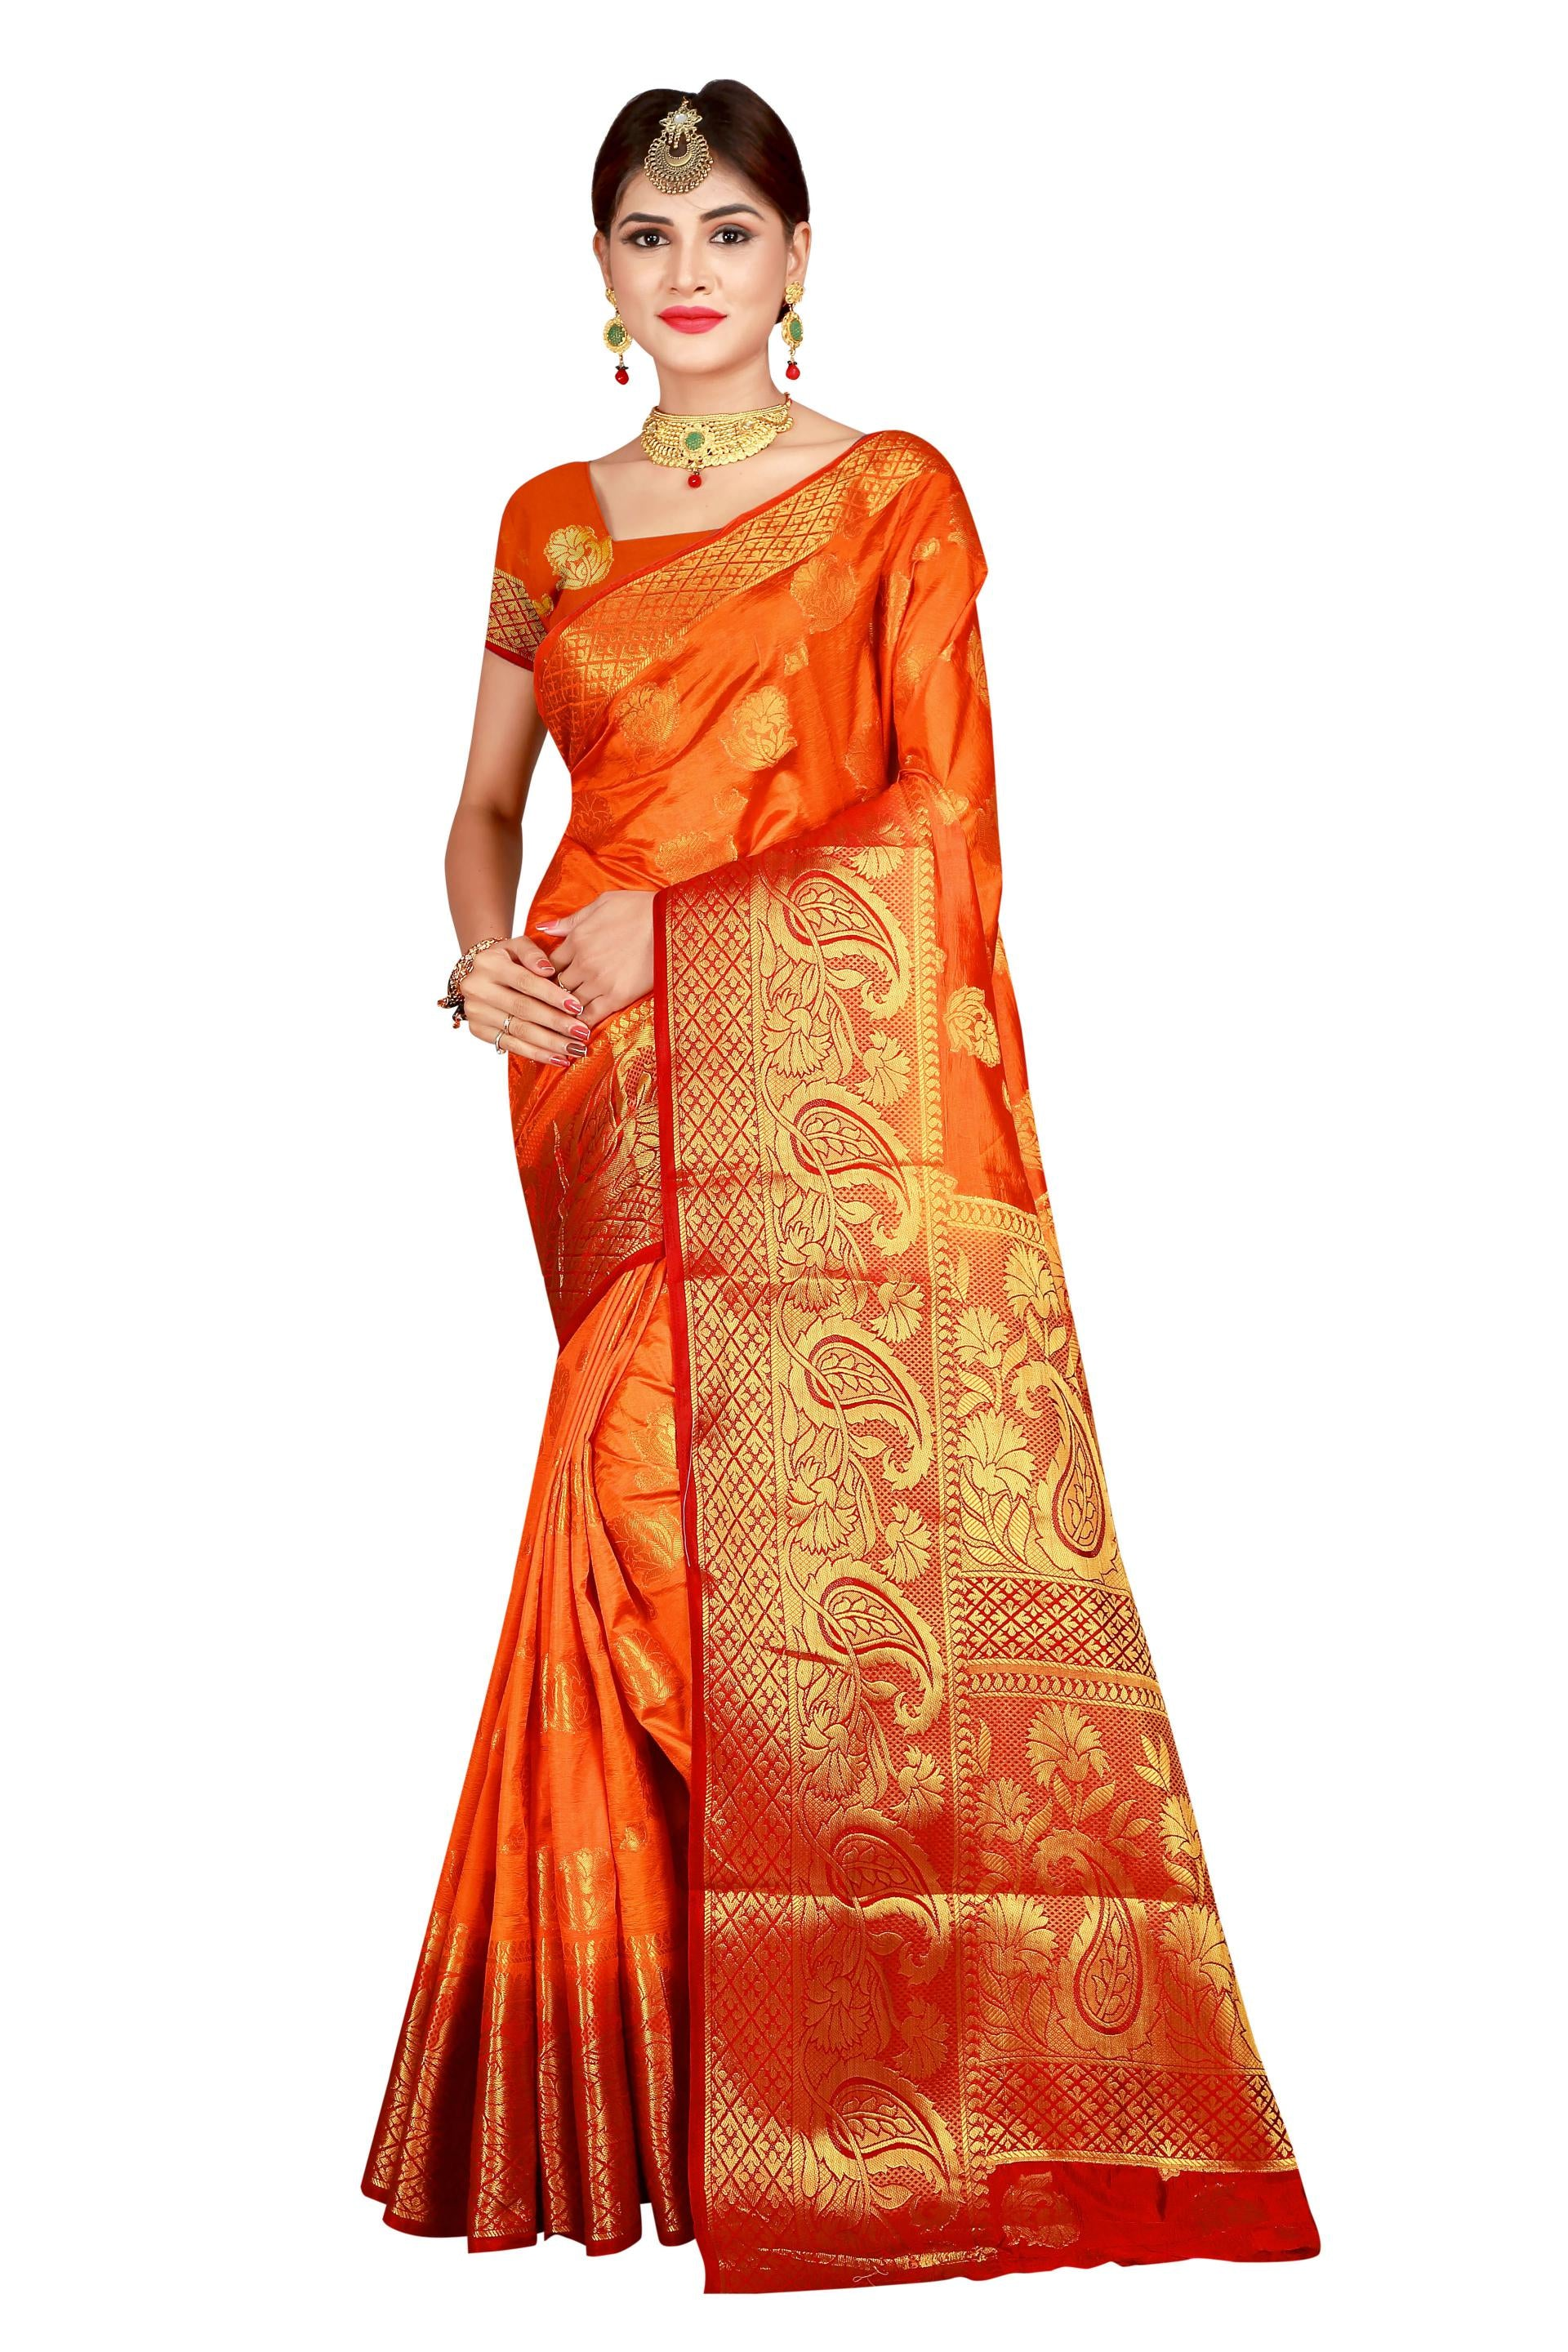 Mango Vel Orange Designer Soft SIlk Banarasi Saree 2089